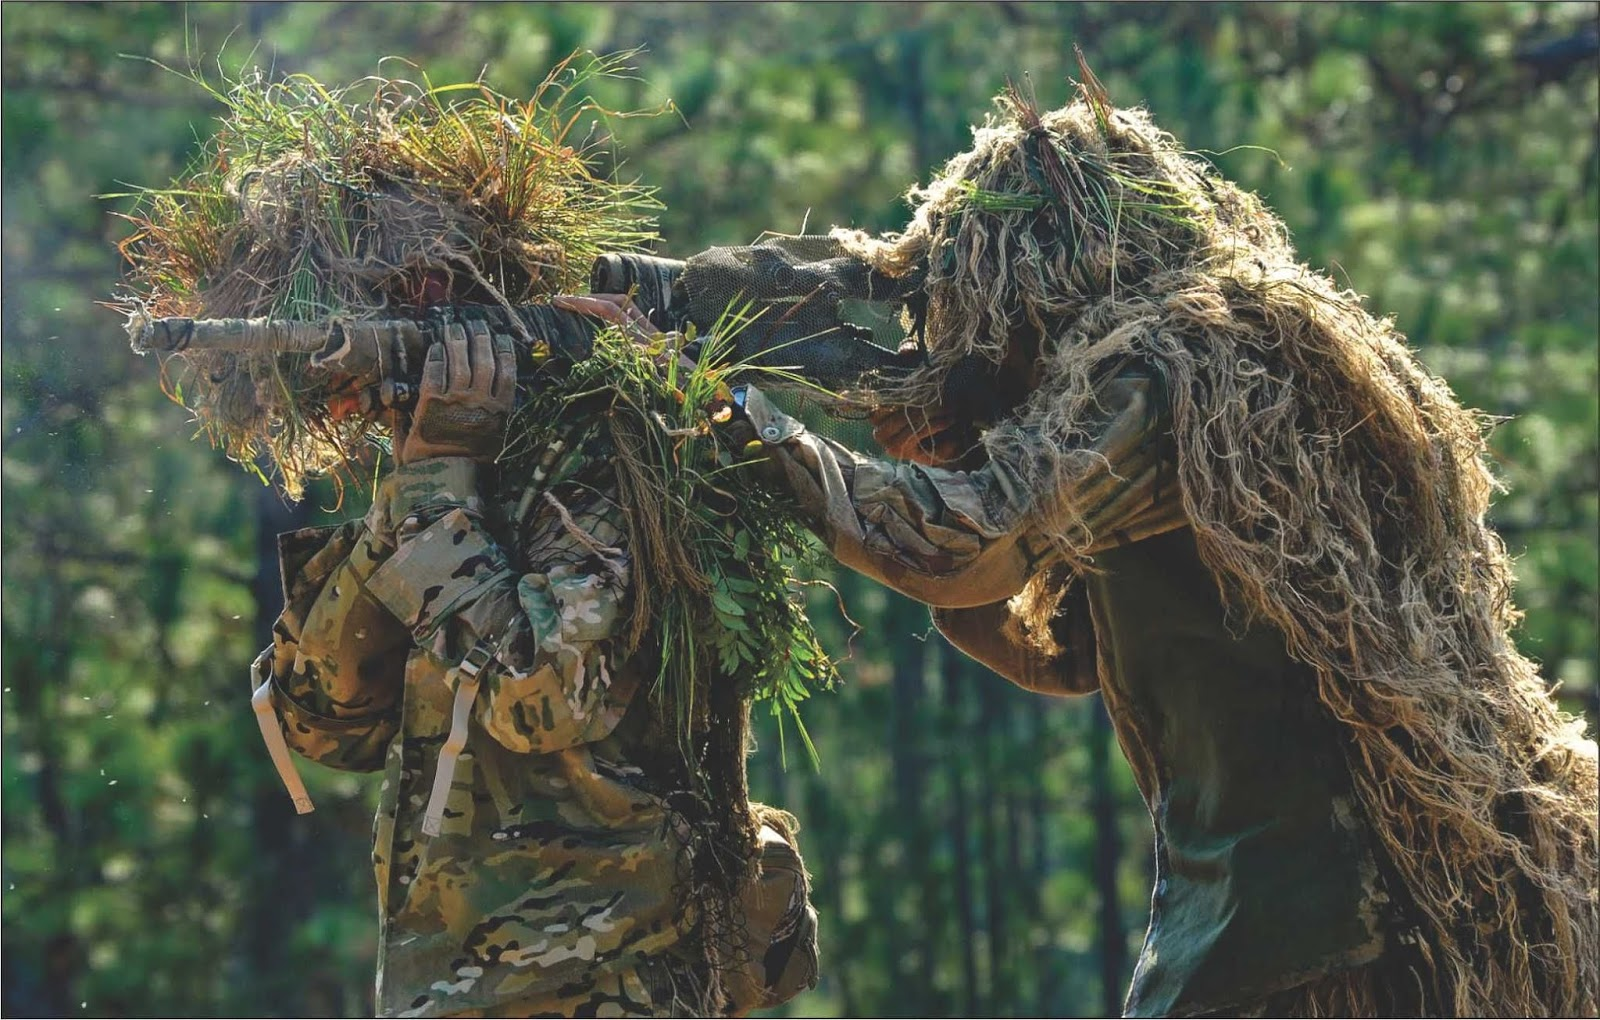 Indian Army Hd Wallpapers 1080p Download Us Ghillie Suit 1600x1020 Download Hd Wallpaper Wallpapertip